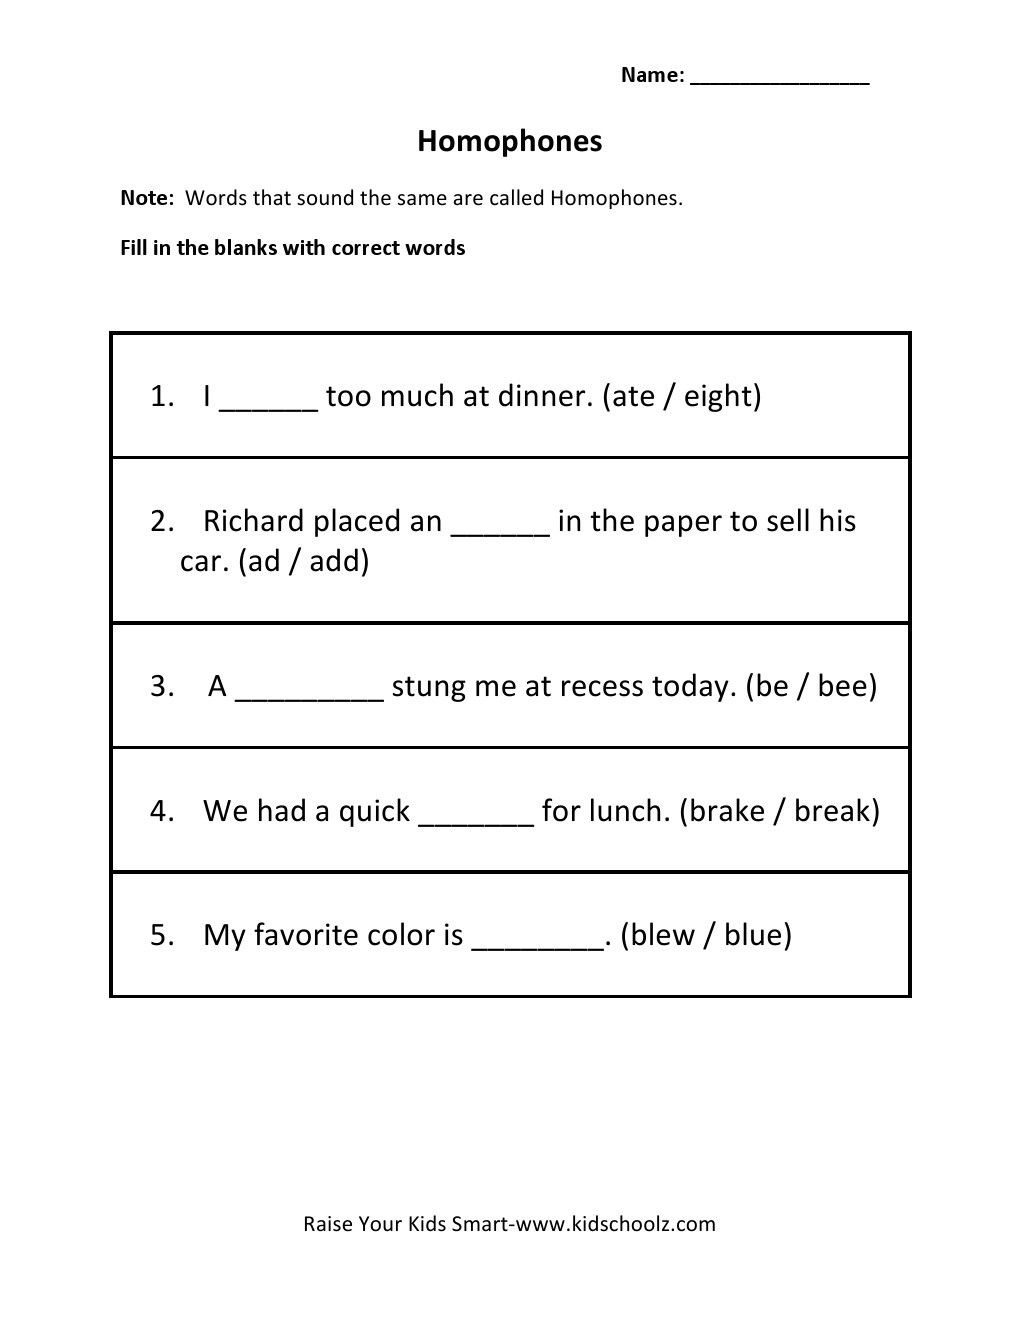 Homophones Worksheets for Grade 5 Wp Content 2014 09 Homophones 1